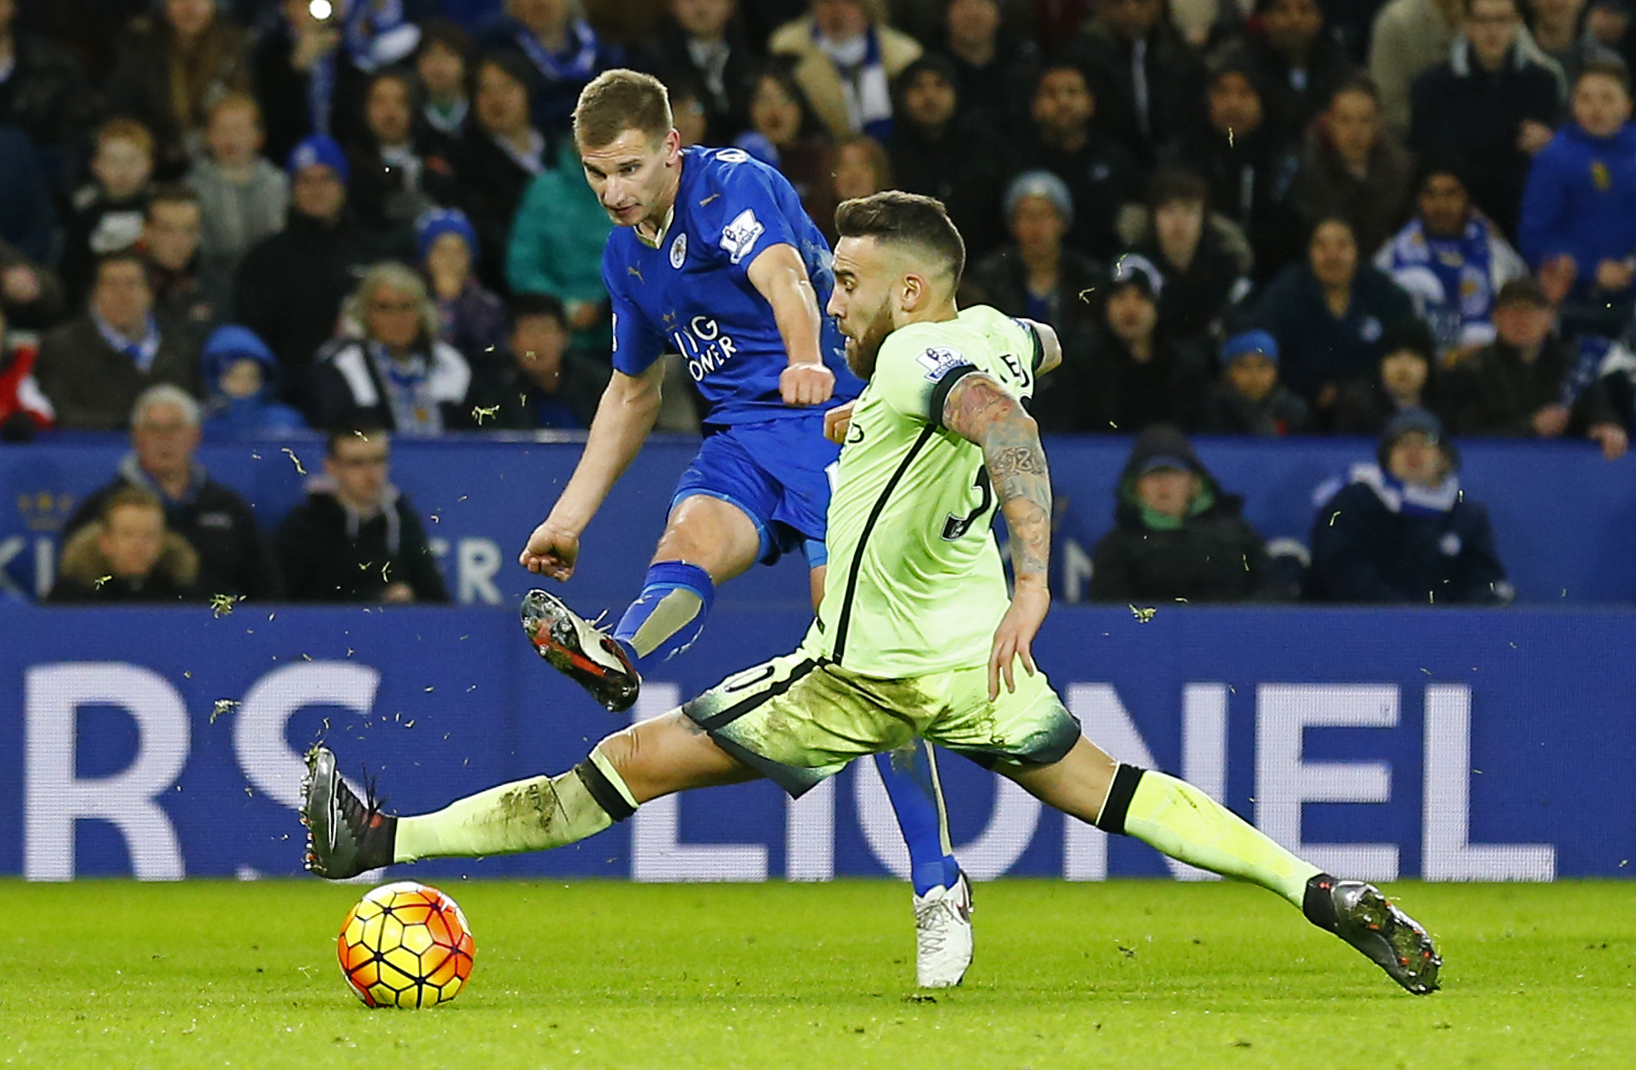 Leicester City's Marc Albrighton and Manchester City's Nicolas Otamendi in action at King Power Stadium on Tuesday, December 29, 2015. Photo: Reuters